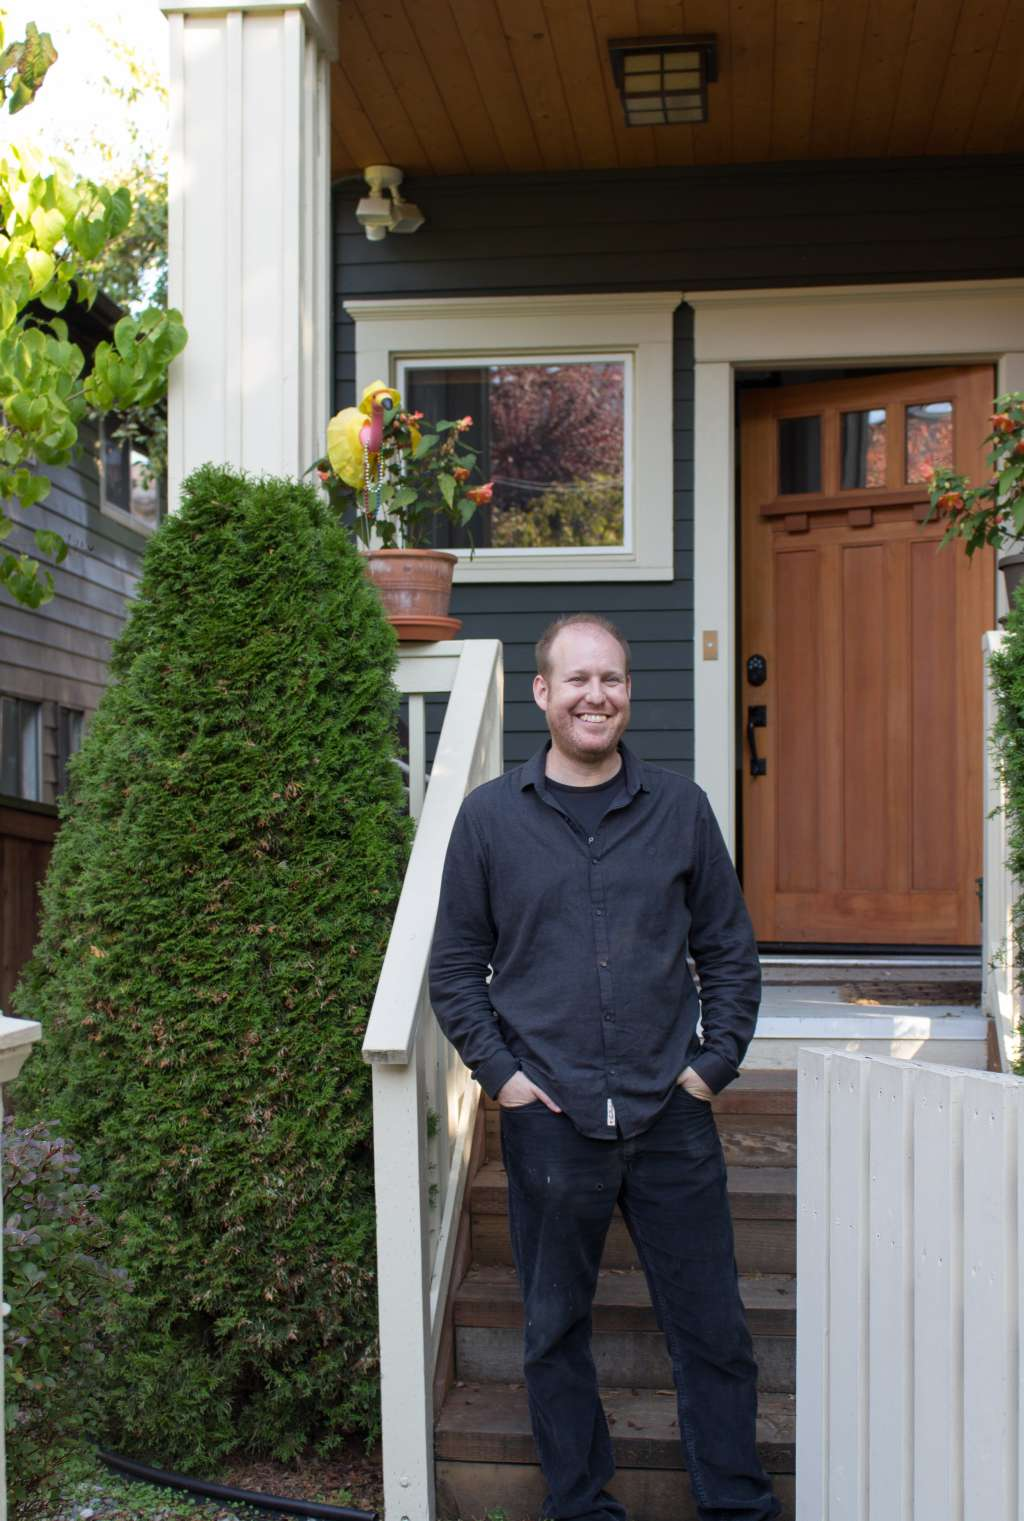 House Tour: A Colorful Craftsman House in Seattle